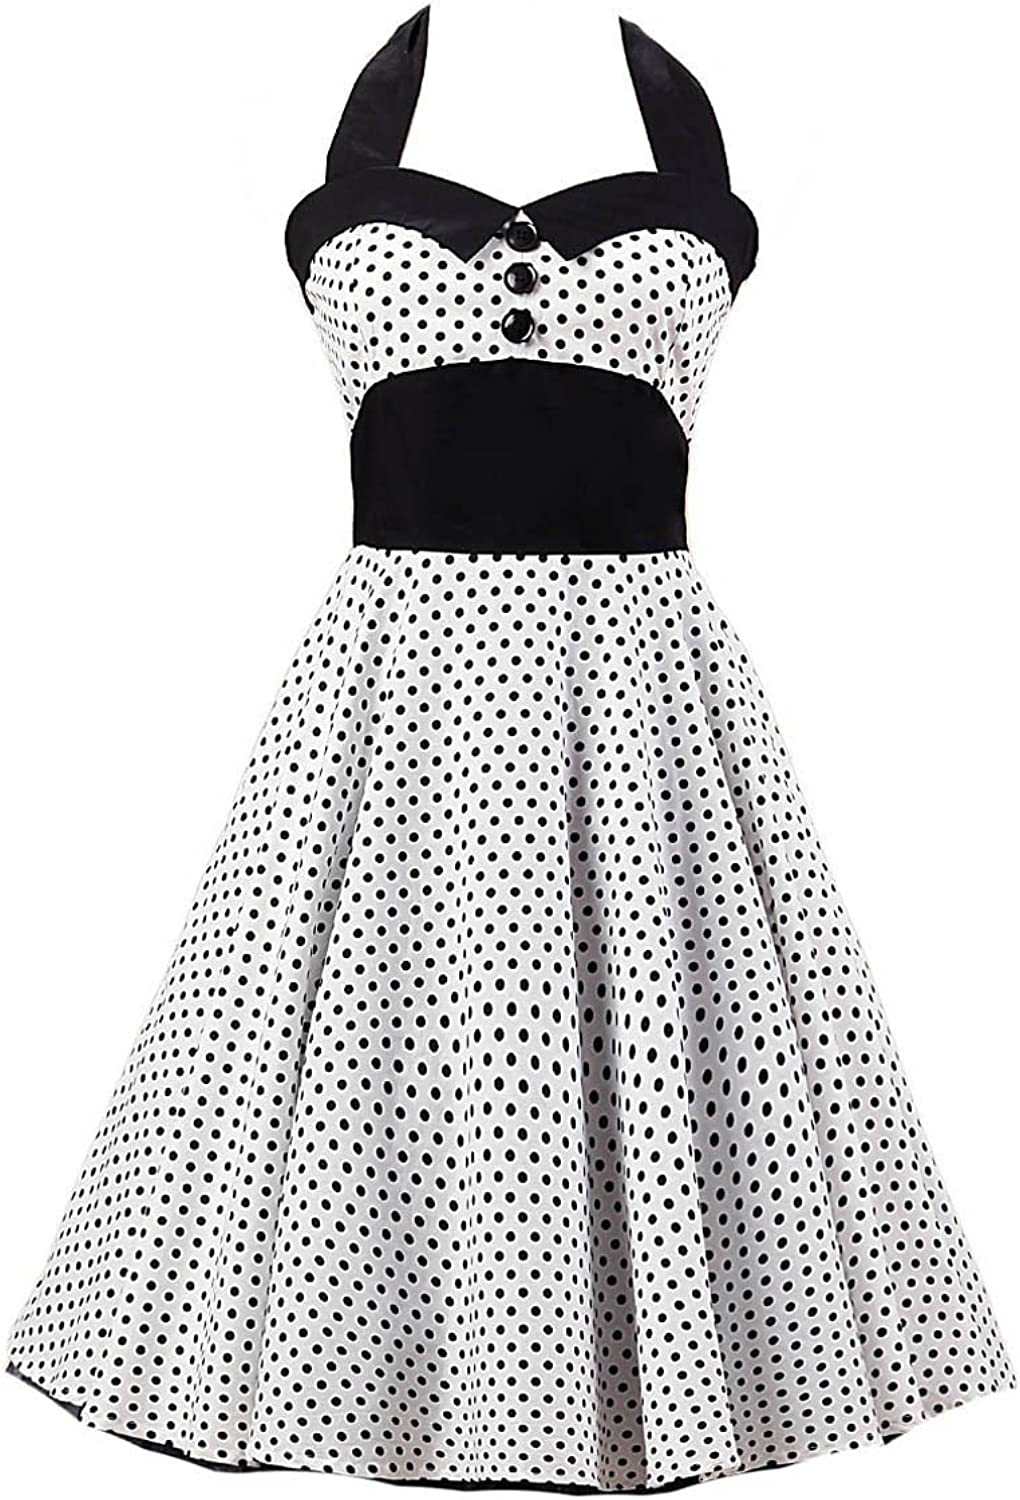 Ensnovo Womens Halter 50s Vintage Rockabilly Polka Dots Party Cocktail Dress